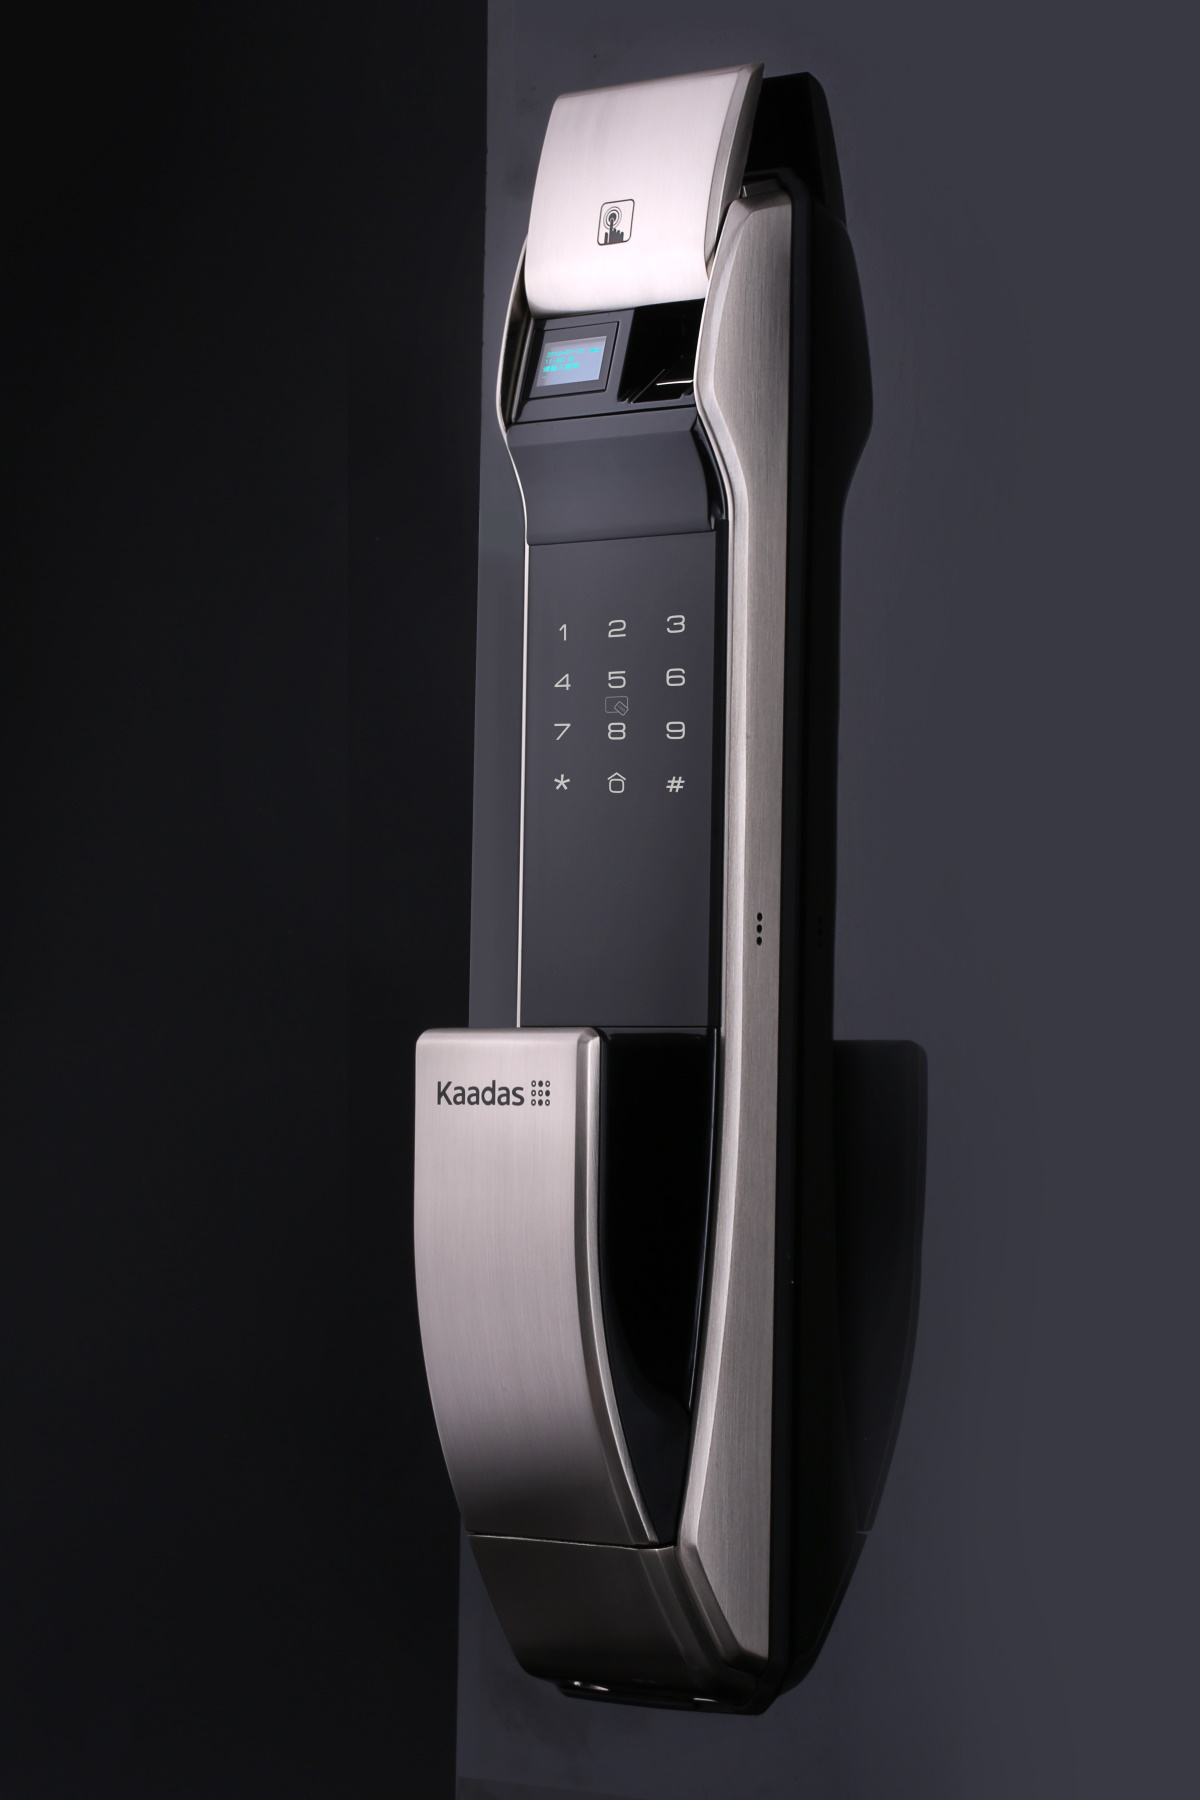 Kaadas Digital Door Lock K7